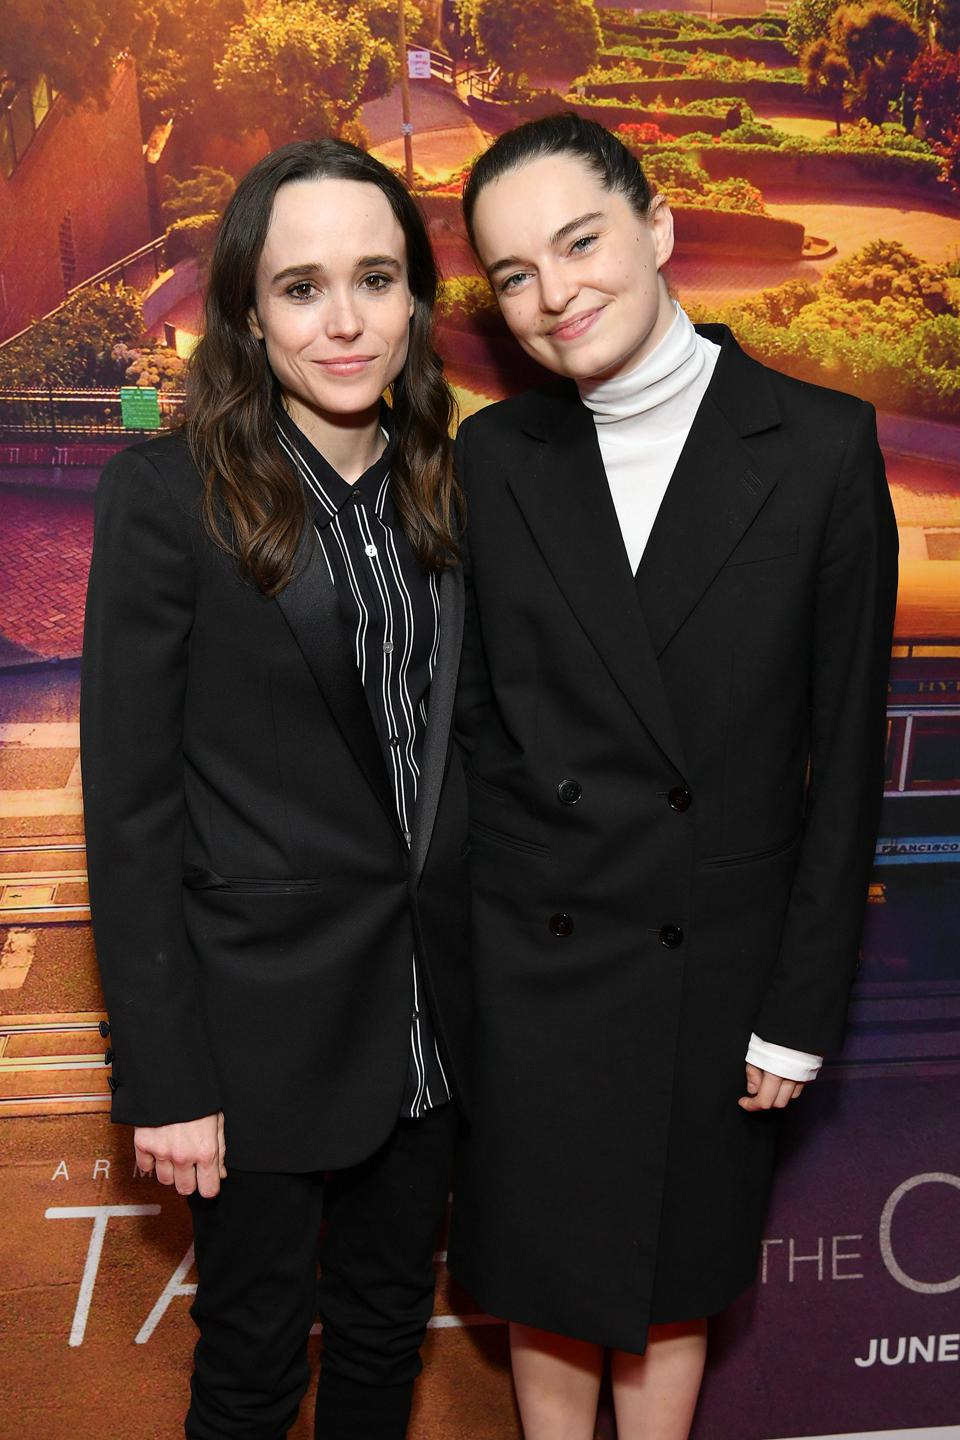 Elliot Page and wife Emma Portner attended the New York City premiere of the film ″Tales Of The City″ in June 2019.